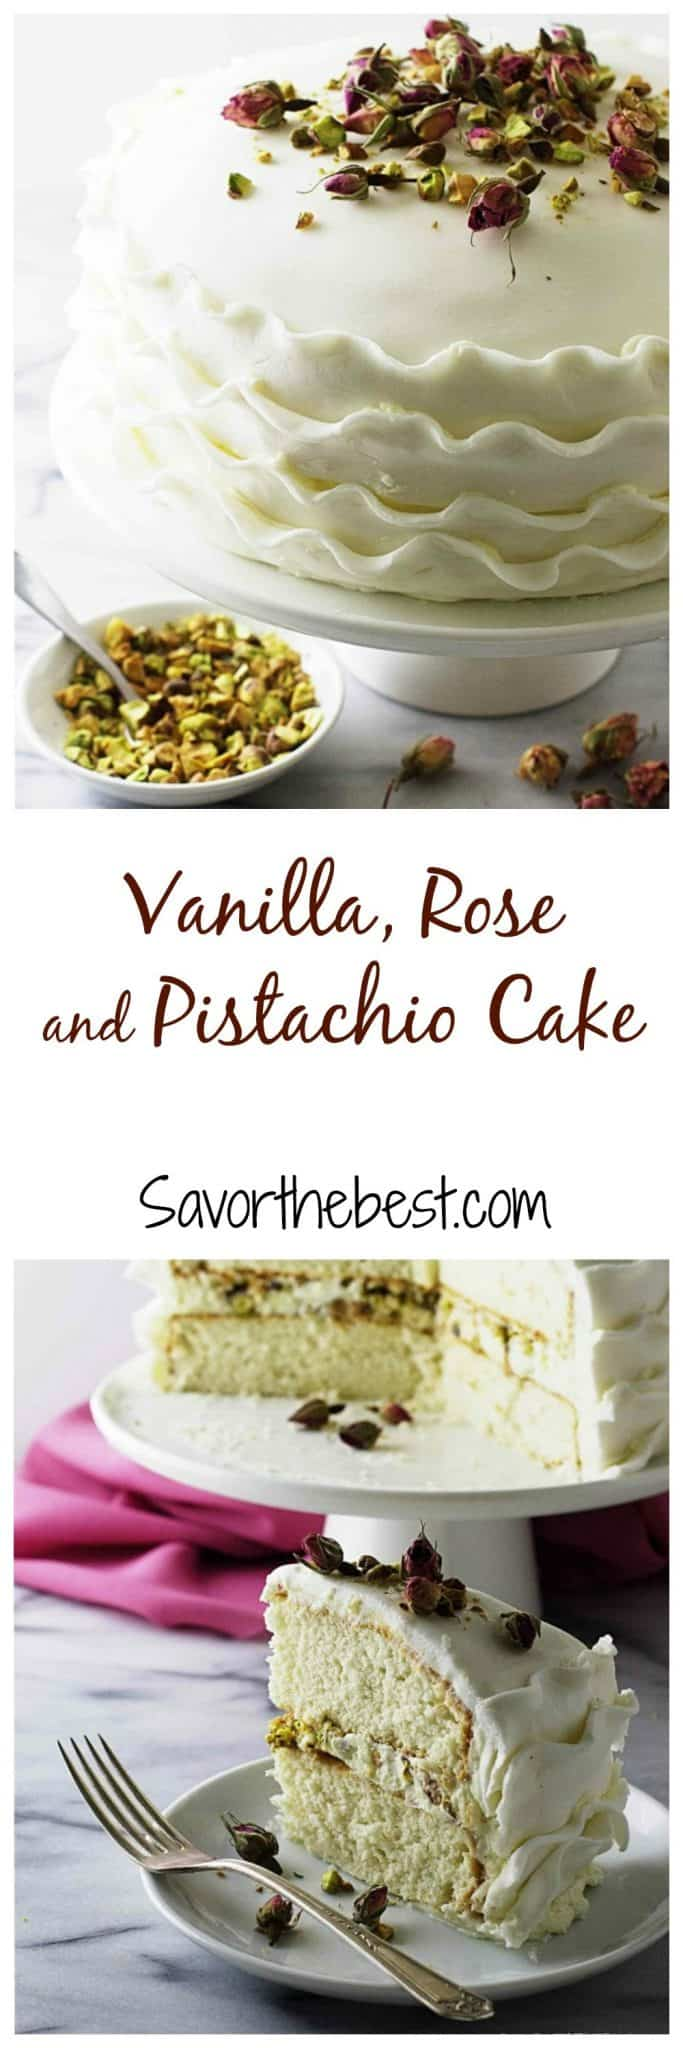 A pure white vanilla cake flavored with a thick rose and pistachio creamy filling, frosted with rose flavored buttercream and white fondant ribbons. It is adorned with dried baby tea rose buds and roasted pistachios.